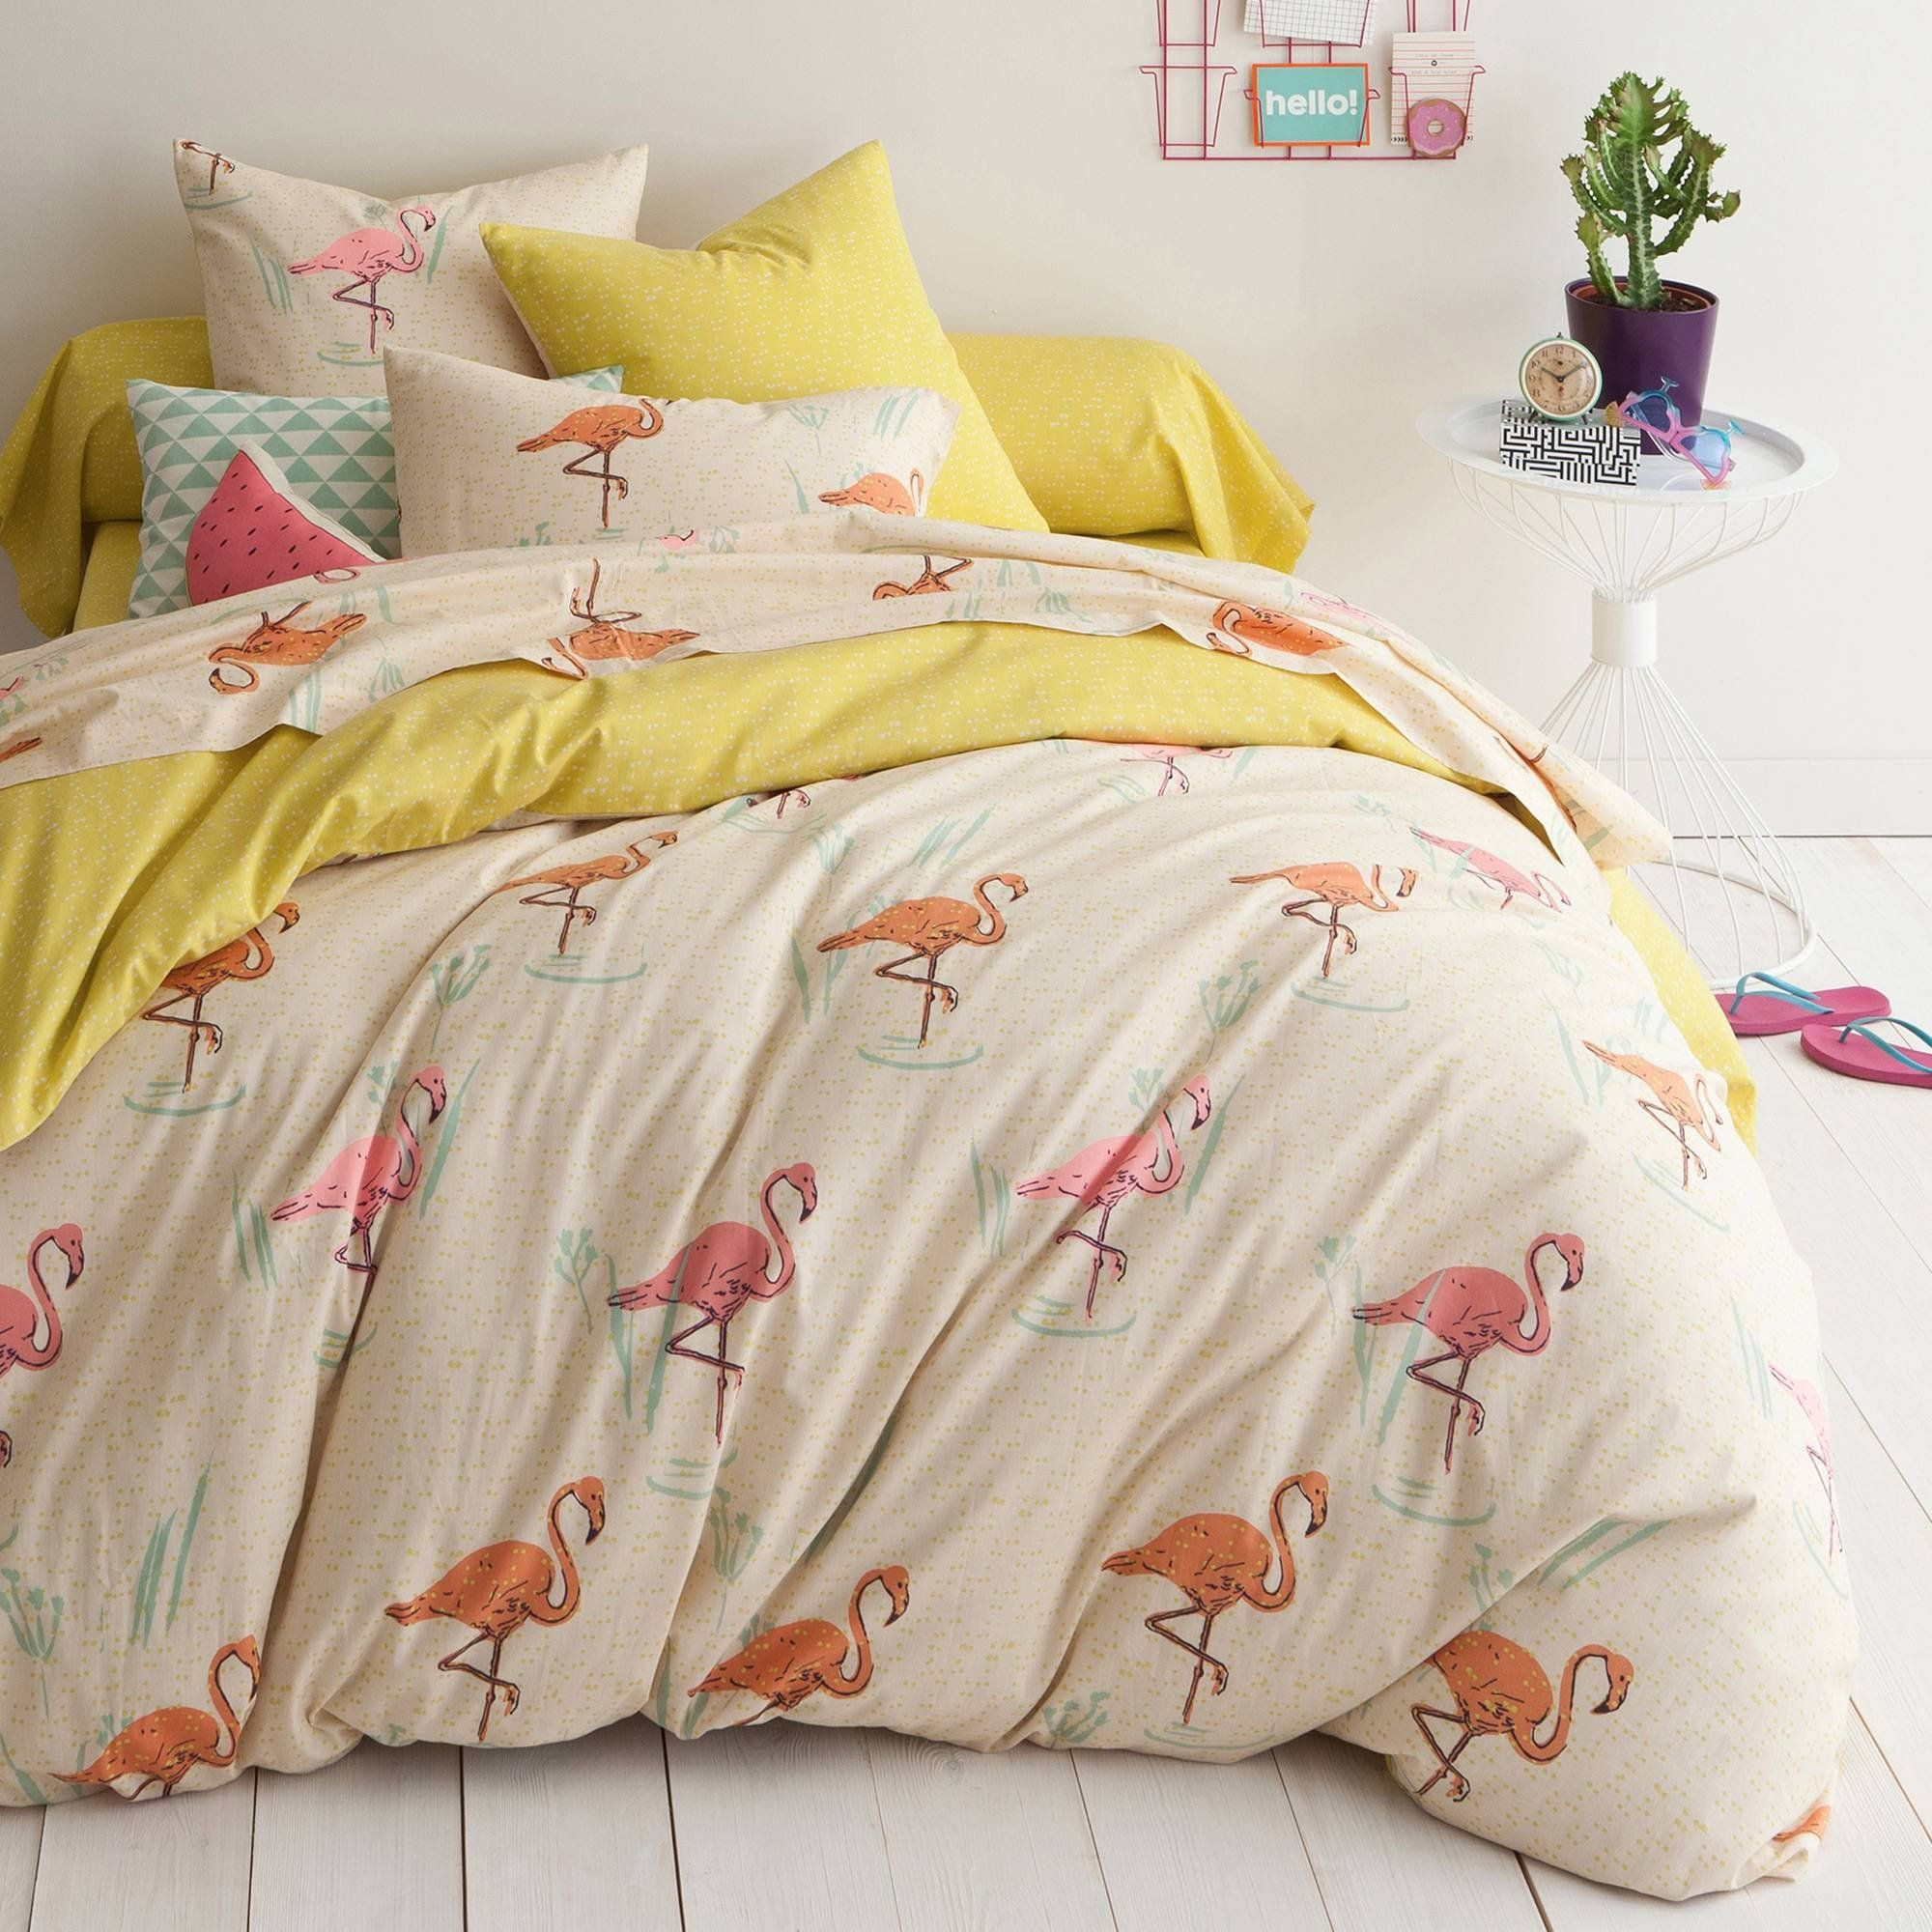 housse de couette coton imprim flamants gaston chambres bedrooms pinterest flamingo and. Black Bedroom Furniture Sets. Home Design Ideas